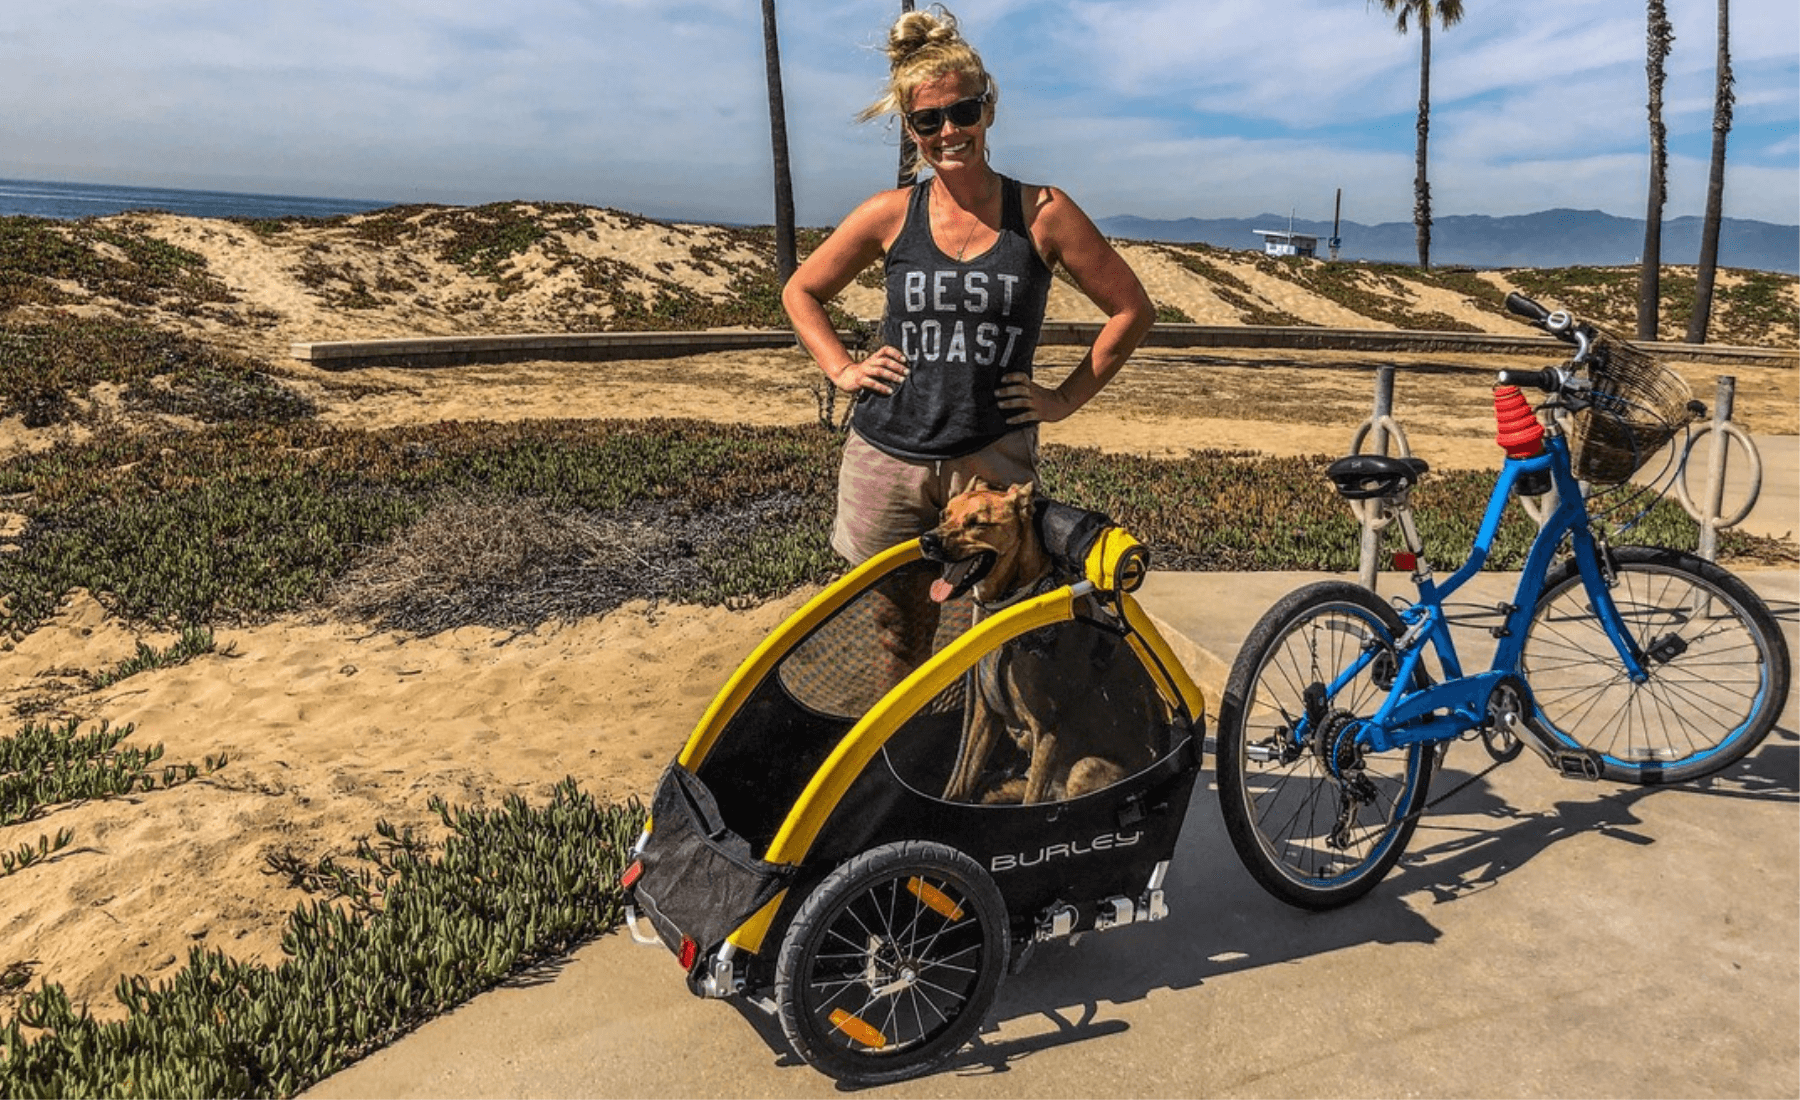 5 Best Dog Bike Trailers 2020 compared, cycle with your best buddy anywhere! - PetsOwnUs